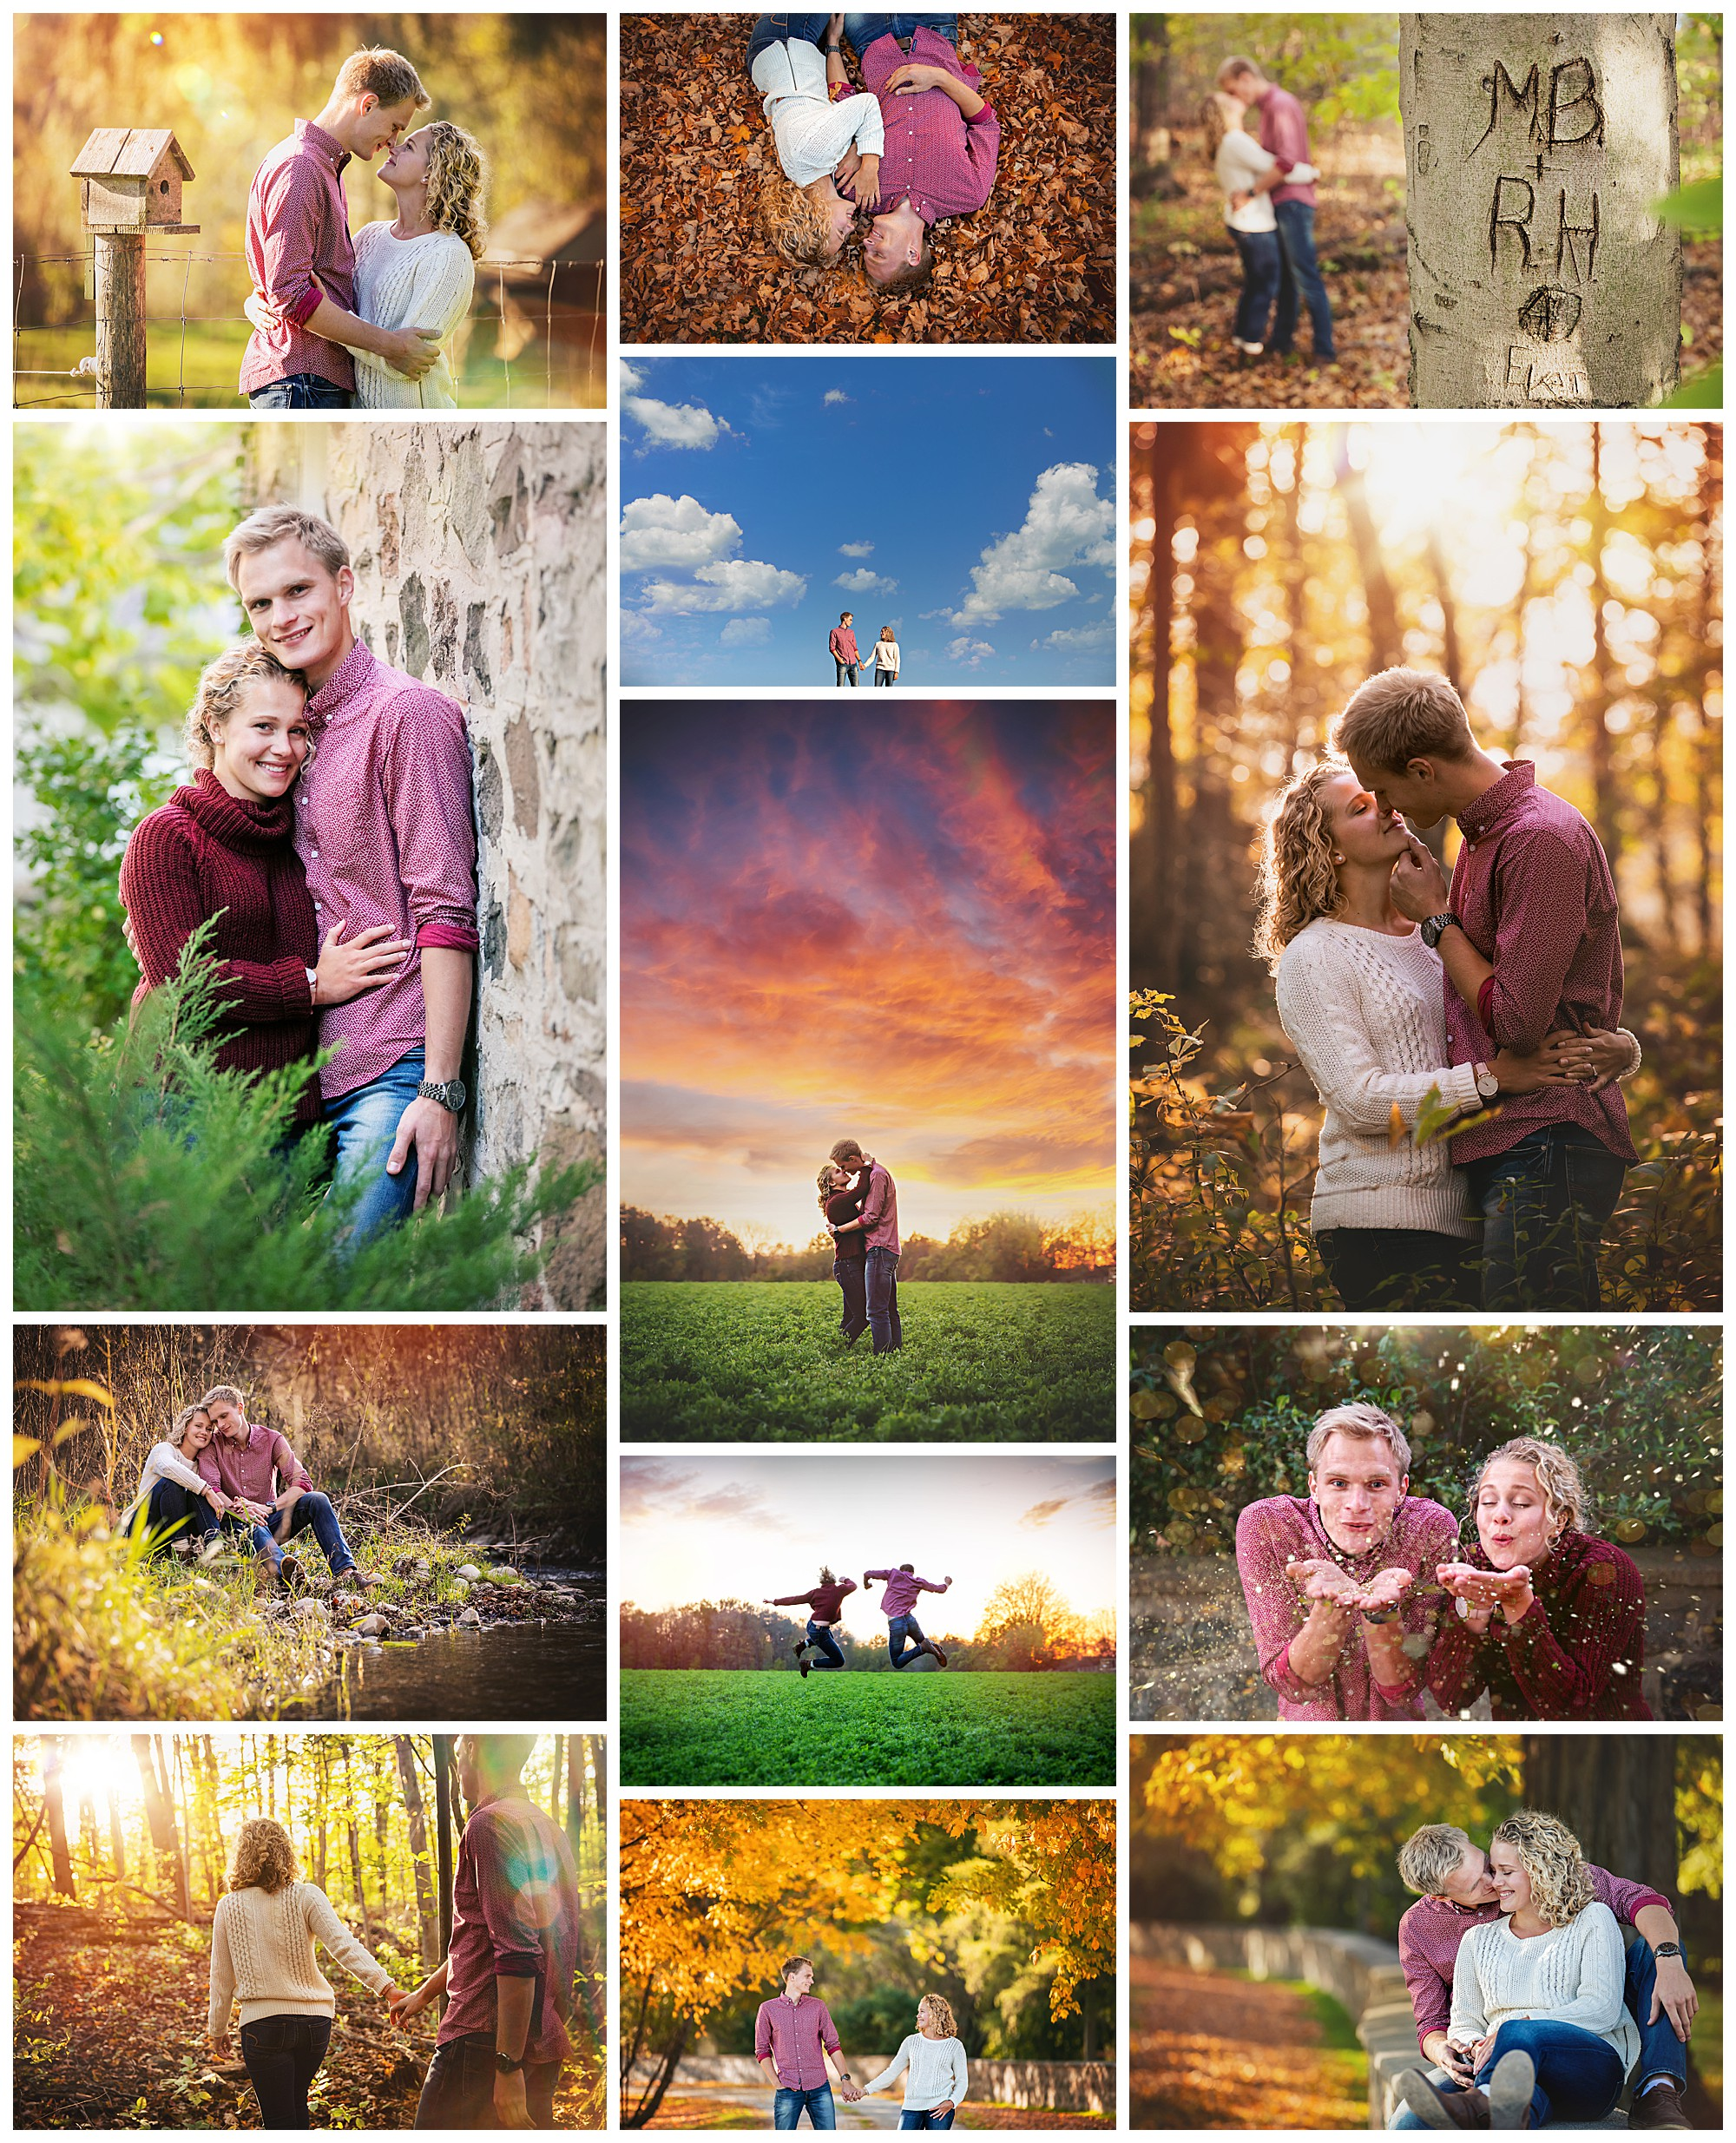 Thorndale, Ontario engagement photography by VanDaele & Russell